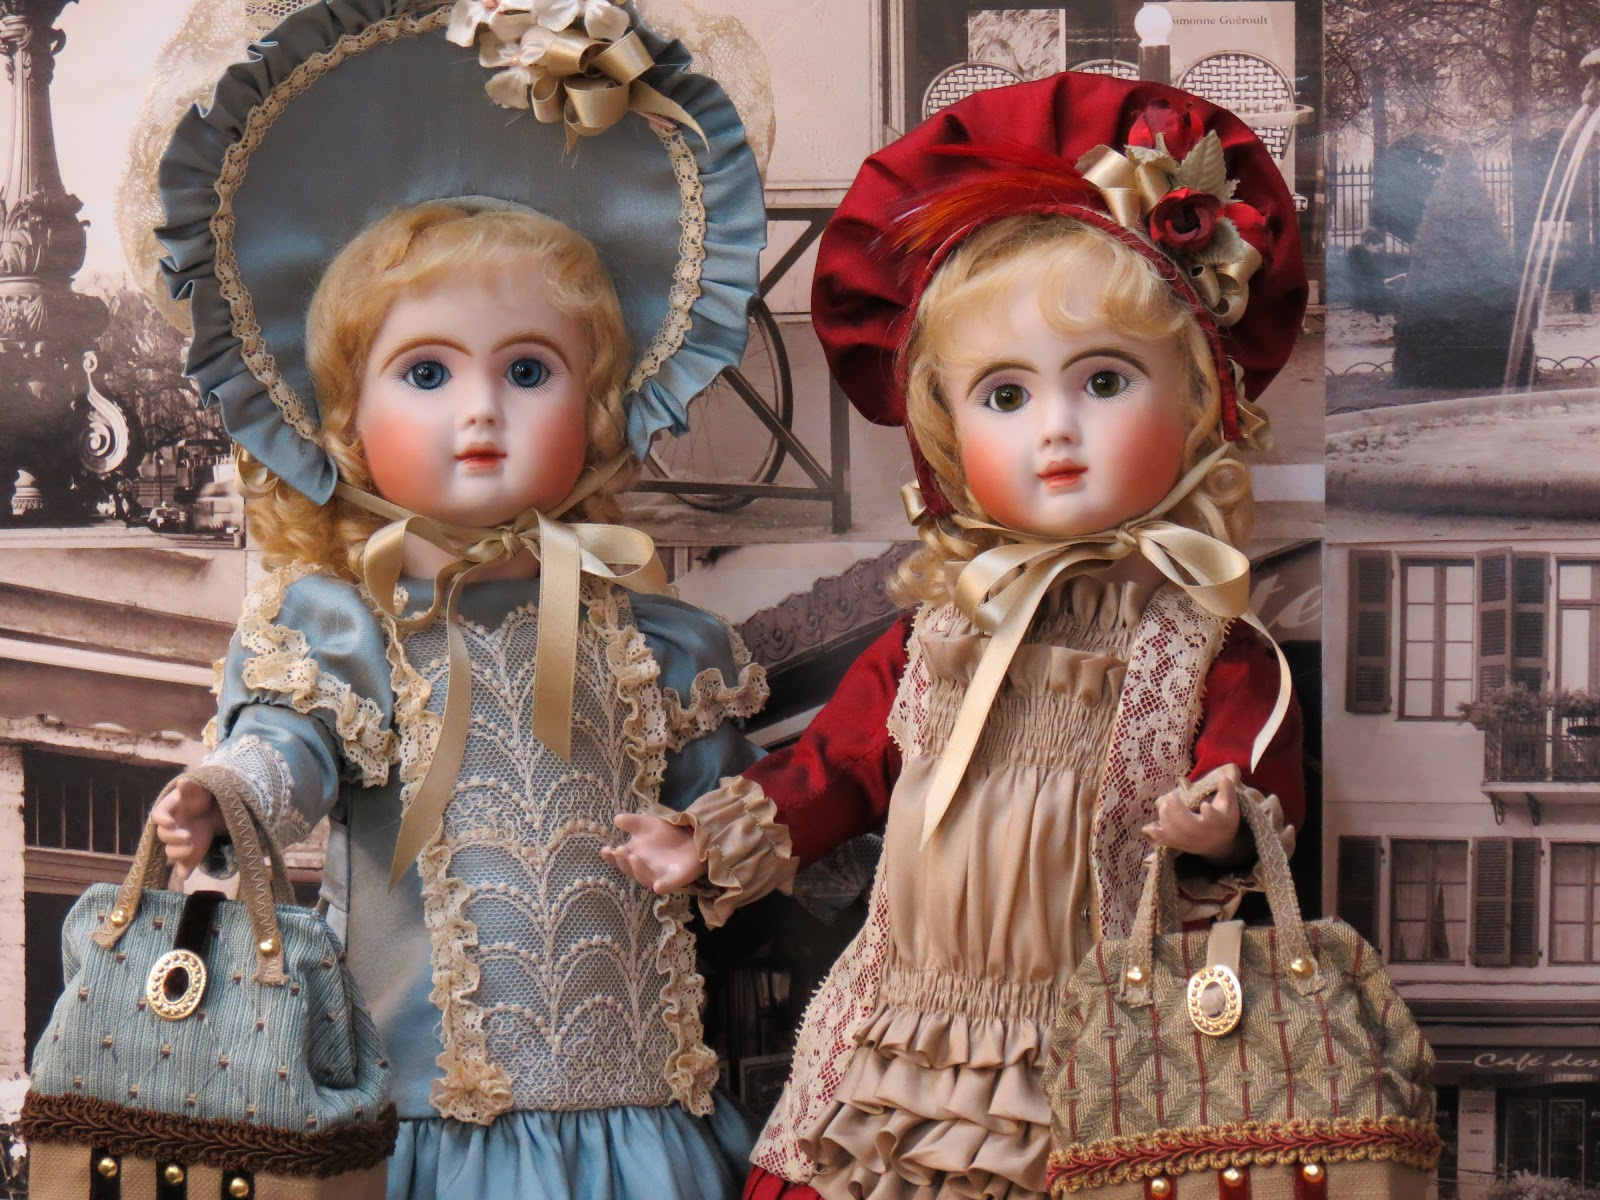 Absentee Souvenir Frenchette Dolls And Workshop Kits Will Be Available For Purchase To Non Attendees Please Contact Connie More Info